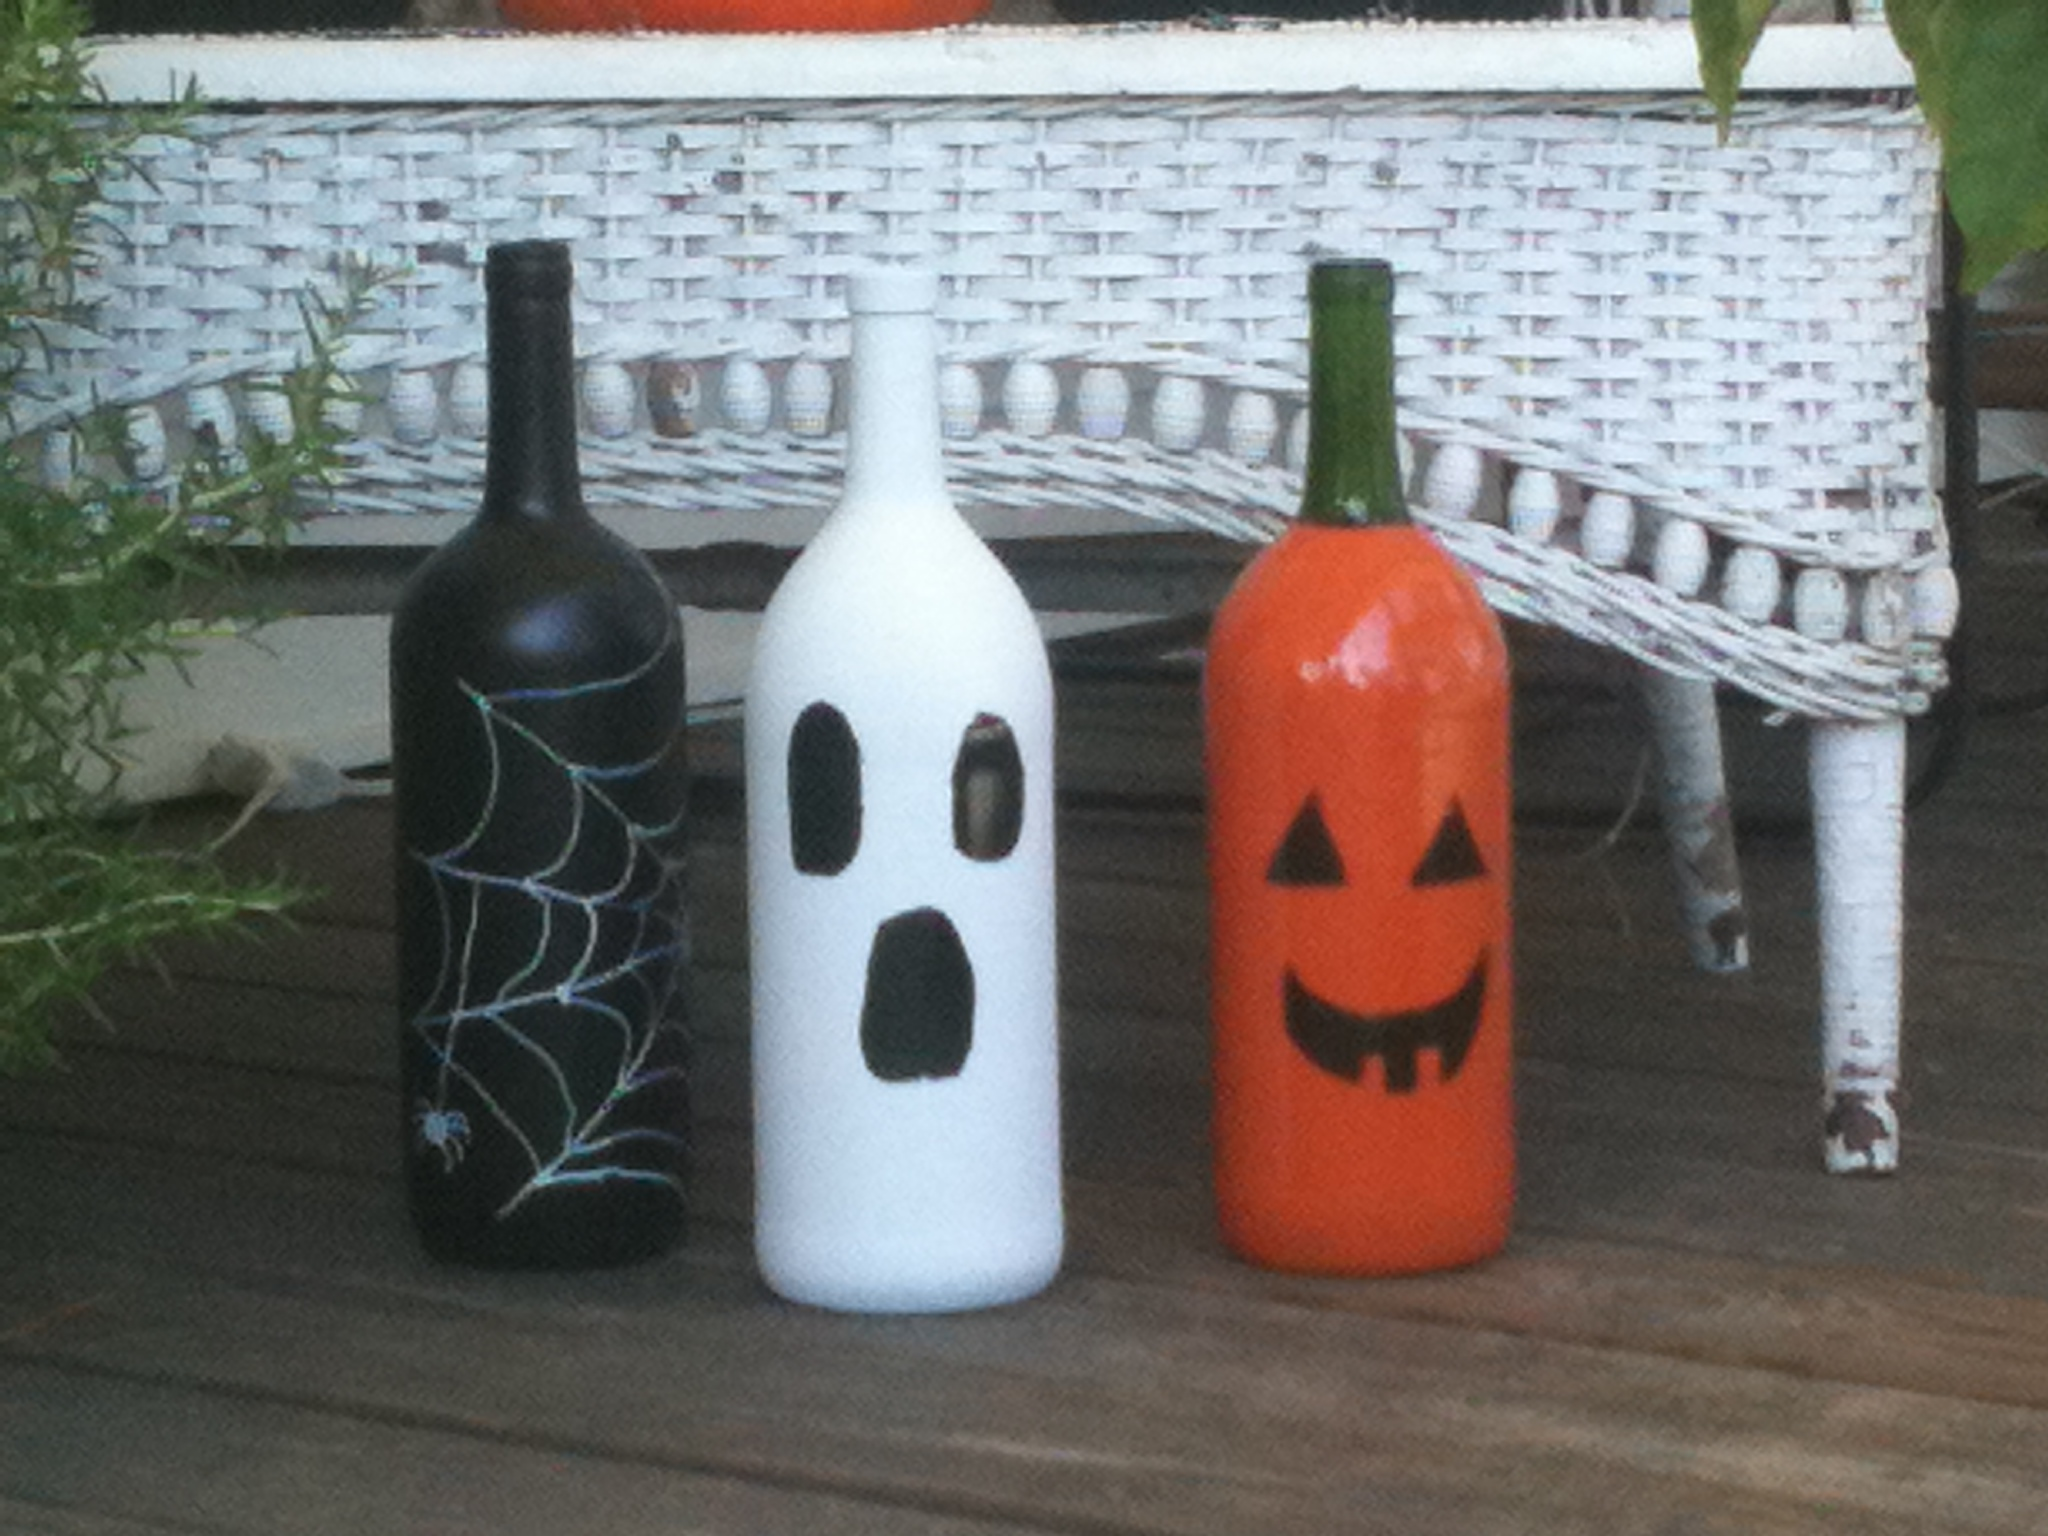 Diy halloween decorations - Diy Halloween Decorations View From Our Front Porch Swing